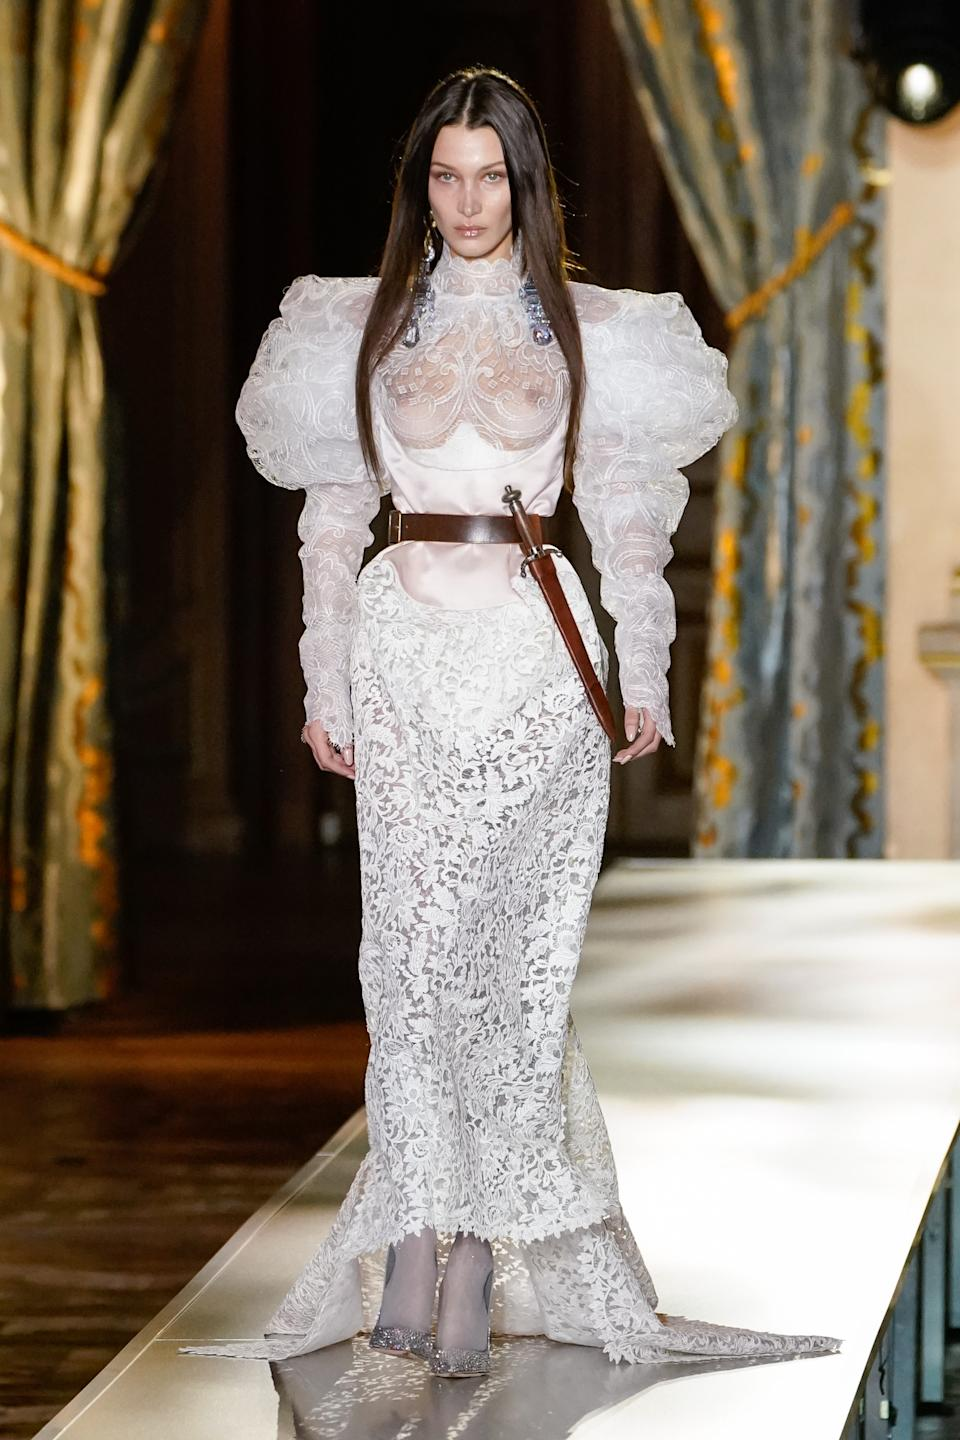 Bella Hadid walks the runway during the Vivienne Westwood show as part of the Paris Fashion Week Womenswear Fall/Winter 2020/2021 on February 29, 2020 in Paris, France.